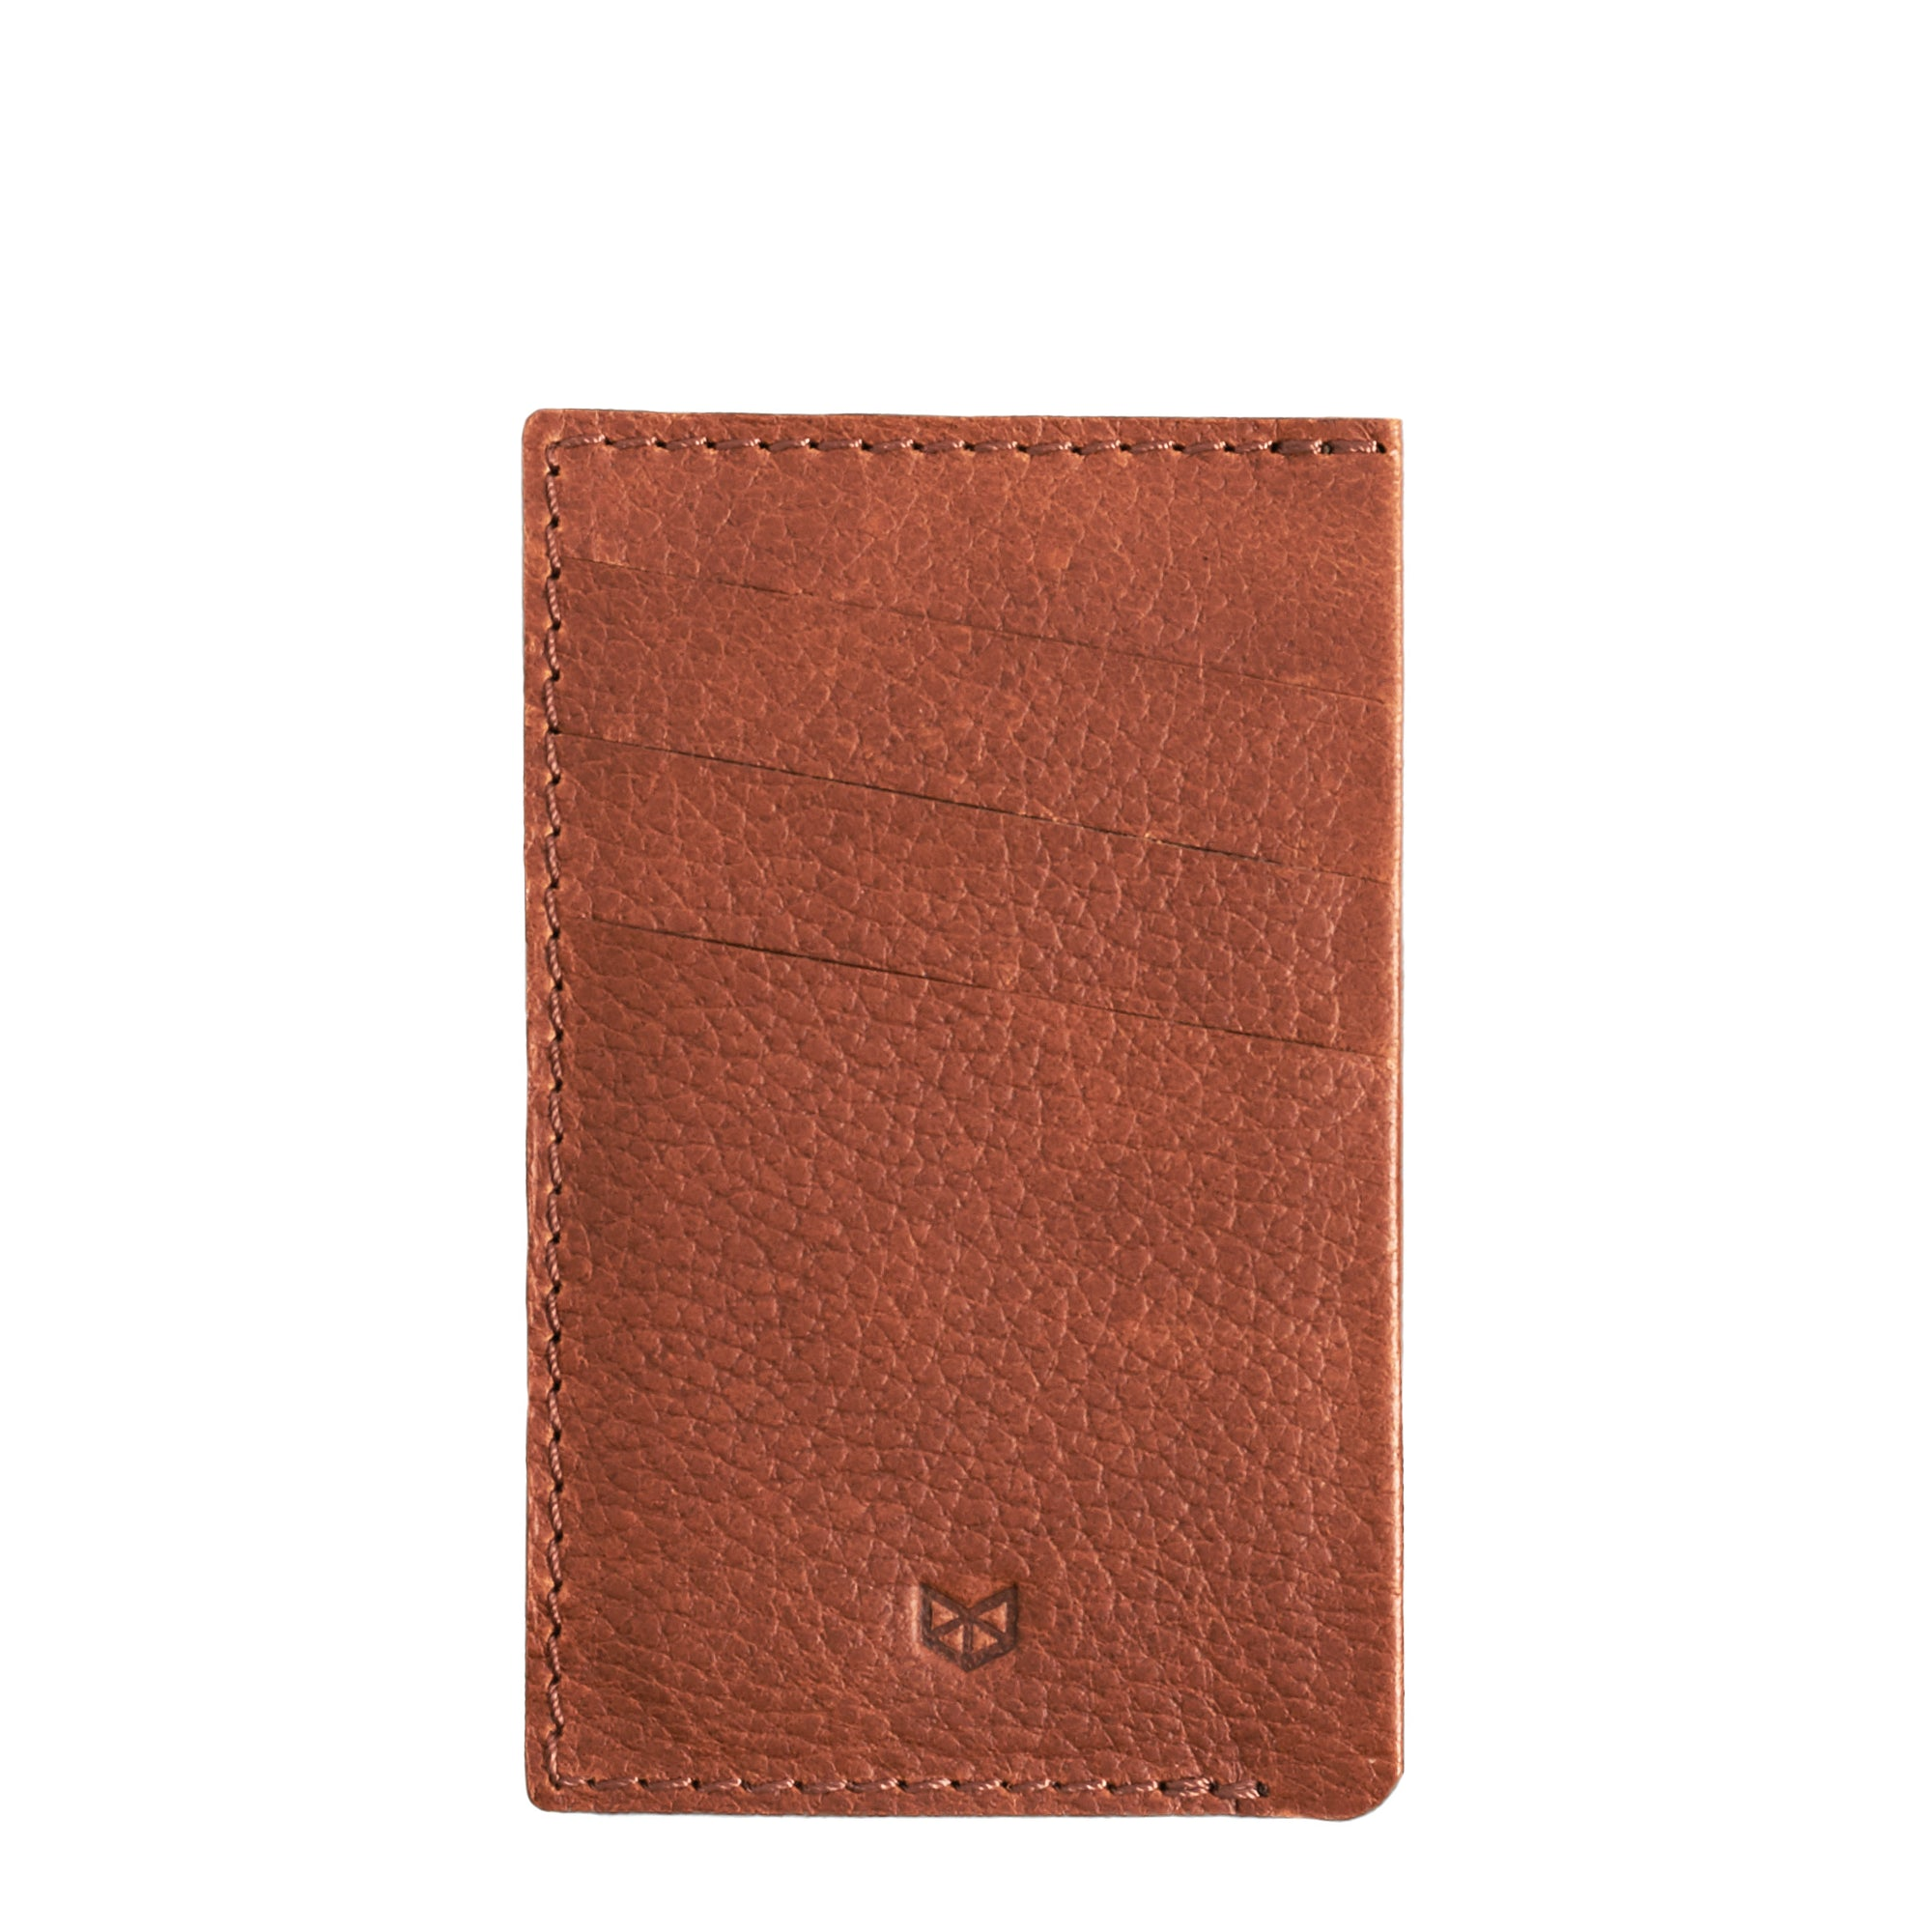 Front Cover. Card Holder Wallet Tan by Capra Leather